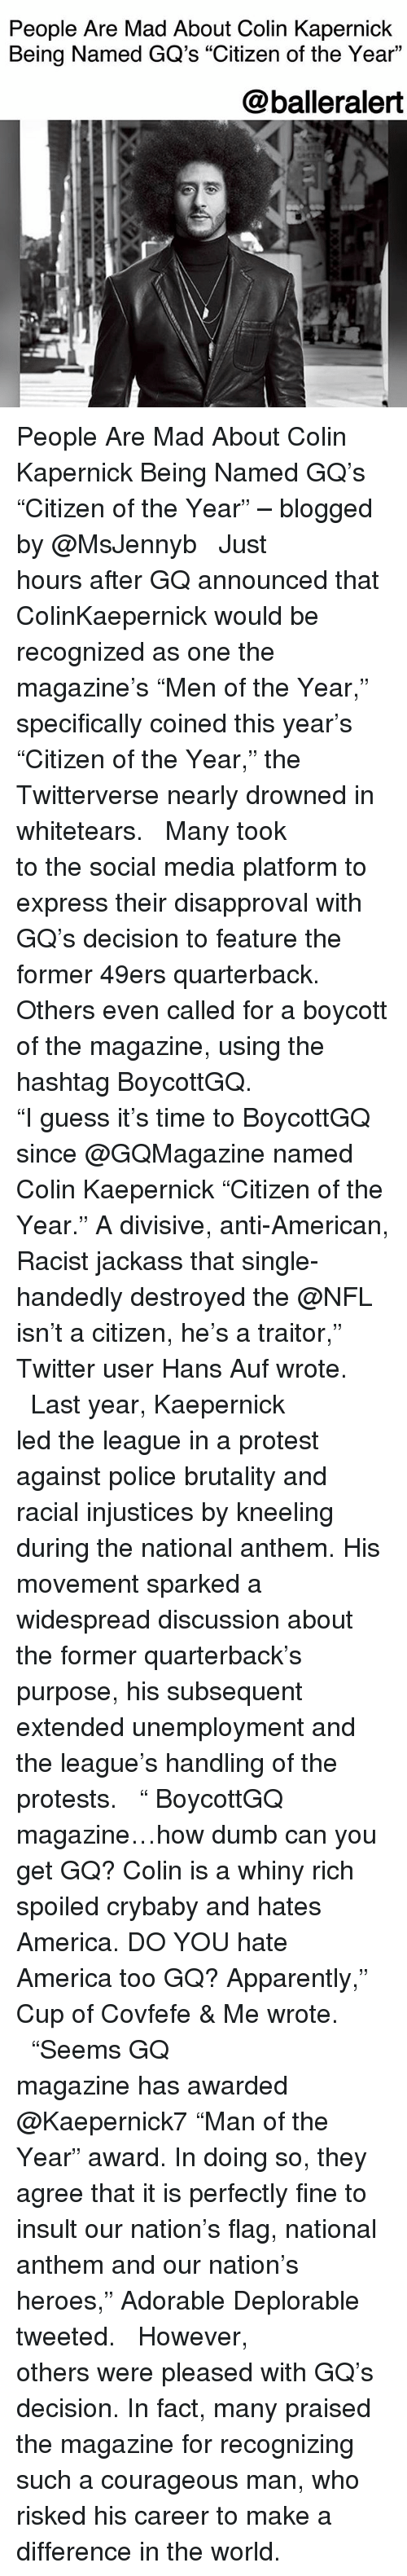 """Covfefe: People Are Mad About Colin Kapernick  Being Named GQ's """"Citizen of the Year""""  L.  @balleralert People Are Mad About Colin Kapernick Being Named GQ's """"Citizen of the Year"""" – blogged by @MsJennyb ⠀⠀⠀⠀⠀⠀⠀ ⠀⠀⠀⠀⠀⠀⠀ Just hours after GQ announced that ColinKaepernick would be recognized as one the magazine's """"Men of the Year,"""" specifically coined this year's """"Citizen of the Year,"""" the Twitterverse nearly drowned in whitetears. ⠀⠀⠀⠀⠀⠀⠀ ⠀⠀⠀⠀⠀⠀⠀ Many took to the social media platform to express their disapproval with GQ's decision to feature the former 49ers quarterback. Others even called for a boycott of the magazine, using the hashtag BoycottGQ. ⠀⠀⠀⠀⠀⠀⠀ ⠀⠀⠀⠀⠀⠀⠀ """"I guess it's time to BoycottGQ since @GQMagazine named Colin Kaepernick """"Citizen of the Year."""" A divisive, anti-American, Racist jackass that single-handedly destroyed the @NFL isn't a citizen, he's a traitor,"""" Twitter user Hans Auf wrote. ⠀⠀⠀⠀⠀⠀⠀ ⠀⠀⠀⠀⠀⠀⠀ Last year, Kaepernick led the league in a protest against police brutality and racial injustices by kneeling during the national anthem. His movement sparked a widespread discussion about the former quarterback's purpose, his subsequent extended unemployment and the league's handling of the protests. ⠀⠀⠀⠀⠀⠀⠀ ⠀⠀⠀⠀⠀⠀⠀ """" BoycottGQ magazine…how dumb can you get GQ? Colin is a whiny rich spoiled crybaby and hates America. DO YOU hate America too GQ? Apparently,"""" Cup of Covfefe & Me wrote. ⠀⠀⠀⠀⠀⠀⠀ ⠀⠀⠀⠀⠀⠀⠀ """"Seems GQ magazine has awarded @Kaepernick7 """"Man of the Year"""" award. In doing so, they agree that it is perfectly fine to insult our nation's flag, national anthem and our nation's heroes,"""" Adorable Deplorable tweeted. ⠀⠀⠀⠀⠀⠀⠀ ⠀⠀⠀⠀⠀⠀⠀ However, others were pleased with GQ's decision. In fact, many praised the magazine for recognizing such a courageous man, who risked his career to make a difference in the world."""